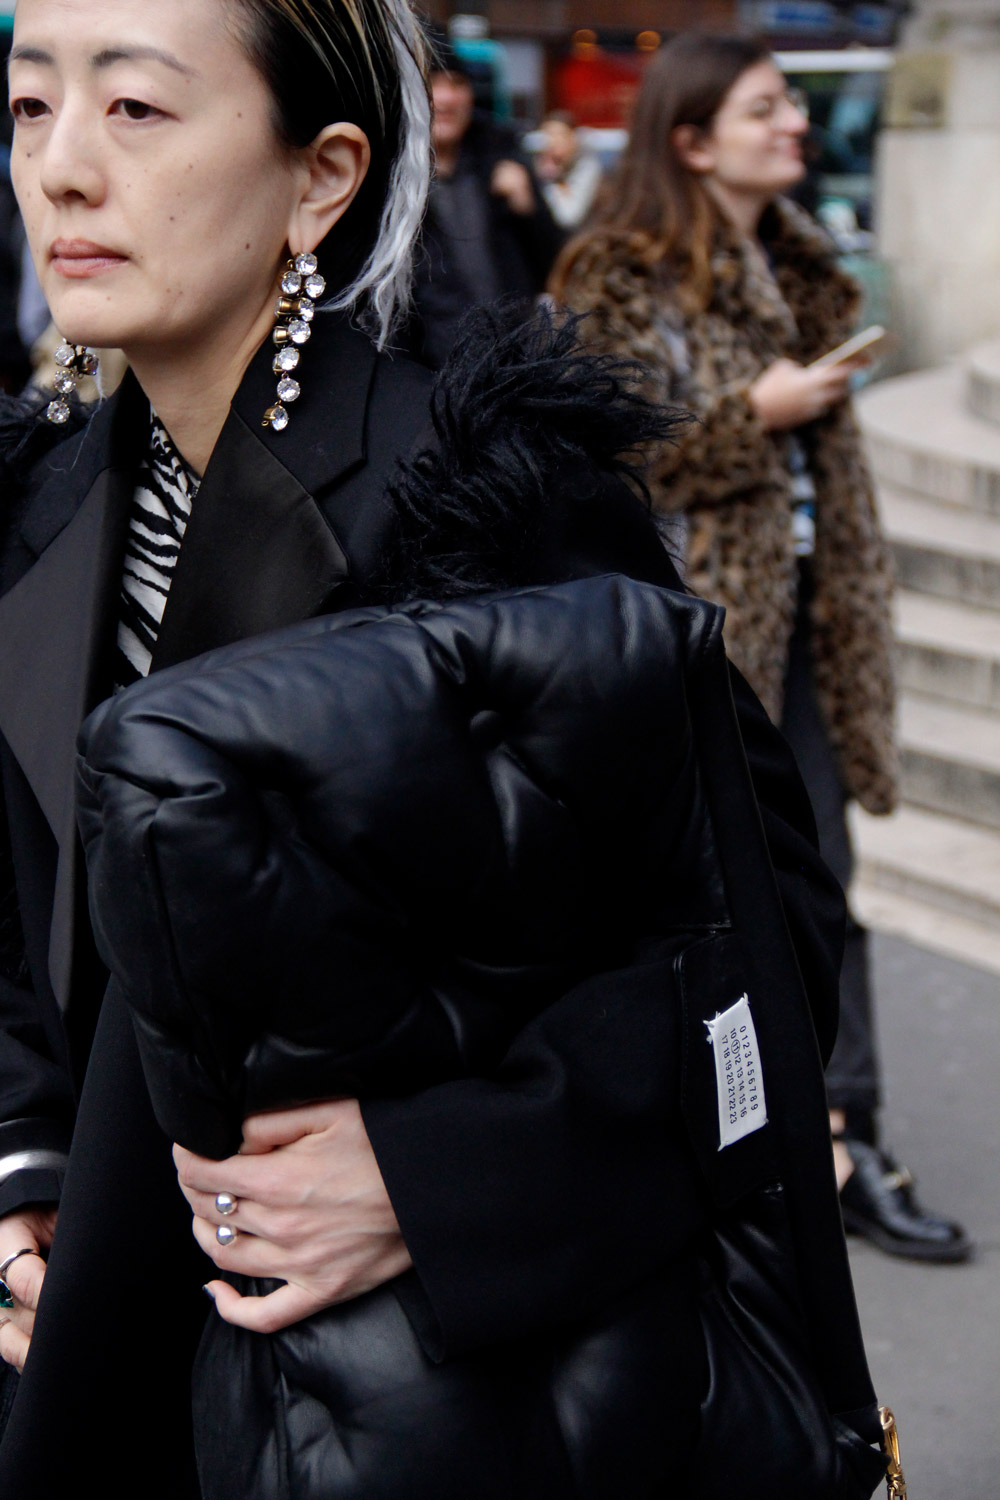 Street Style Looks from Paris Fashion Week Fall 2018 Part - ENFNTS TERRIBLES Magazine